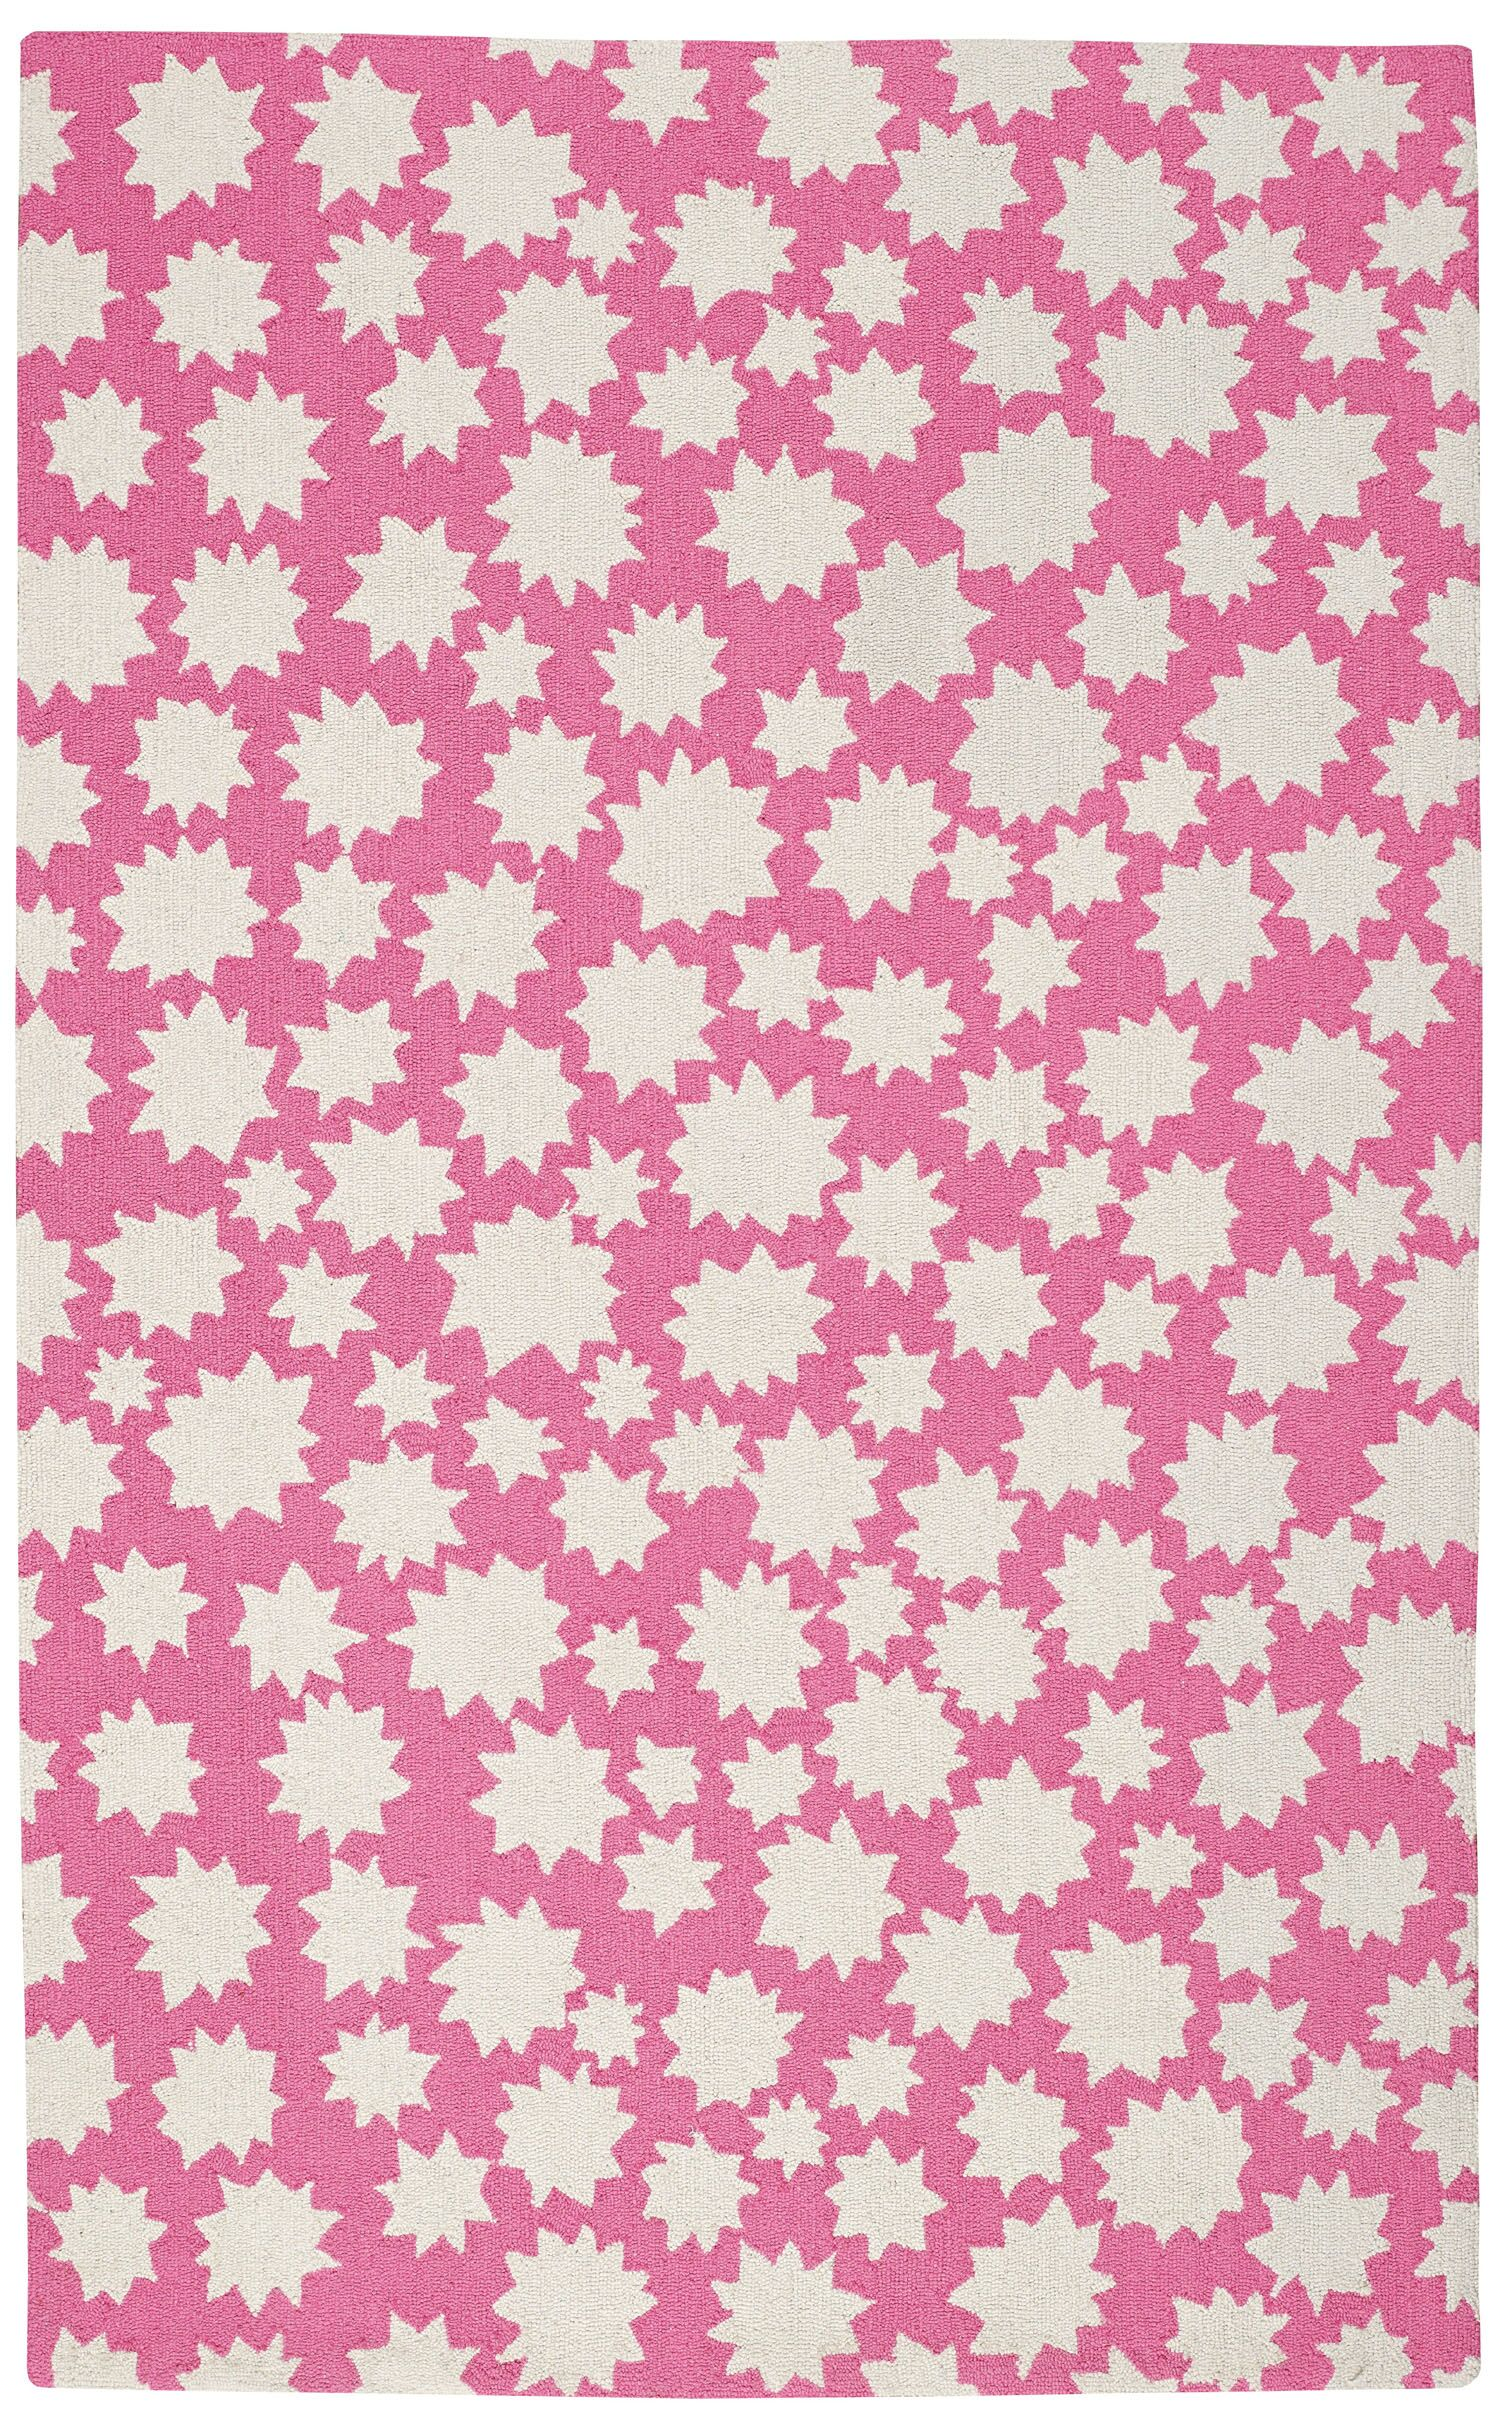 Ezequiel Pink/White Area Rug Rug Size: Rectangle 3'6